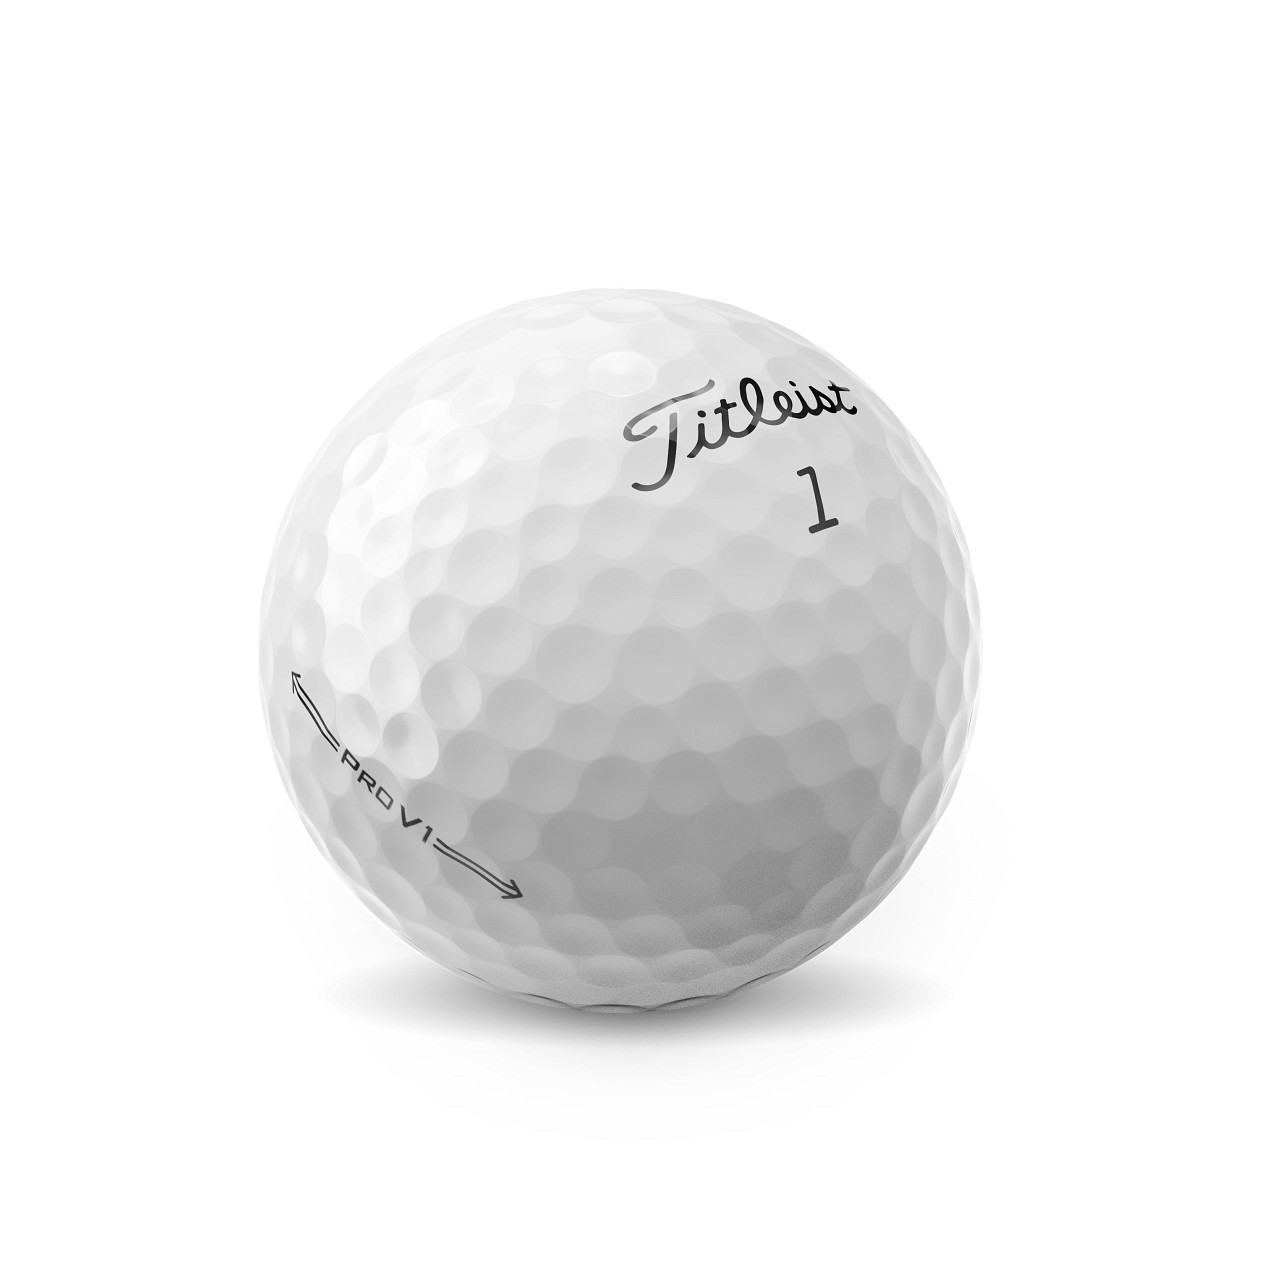 Titleist Personalized Pro V1 Dozen Golf Balls 2021 - Low Numbers (1,2,3,4)